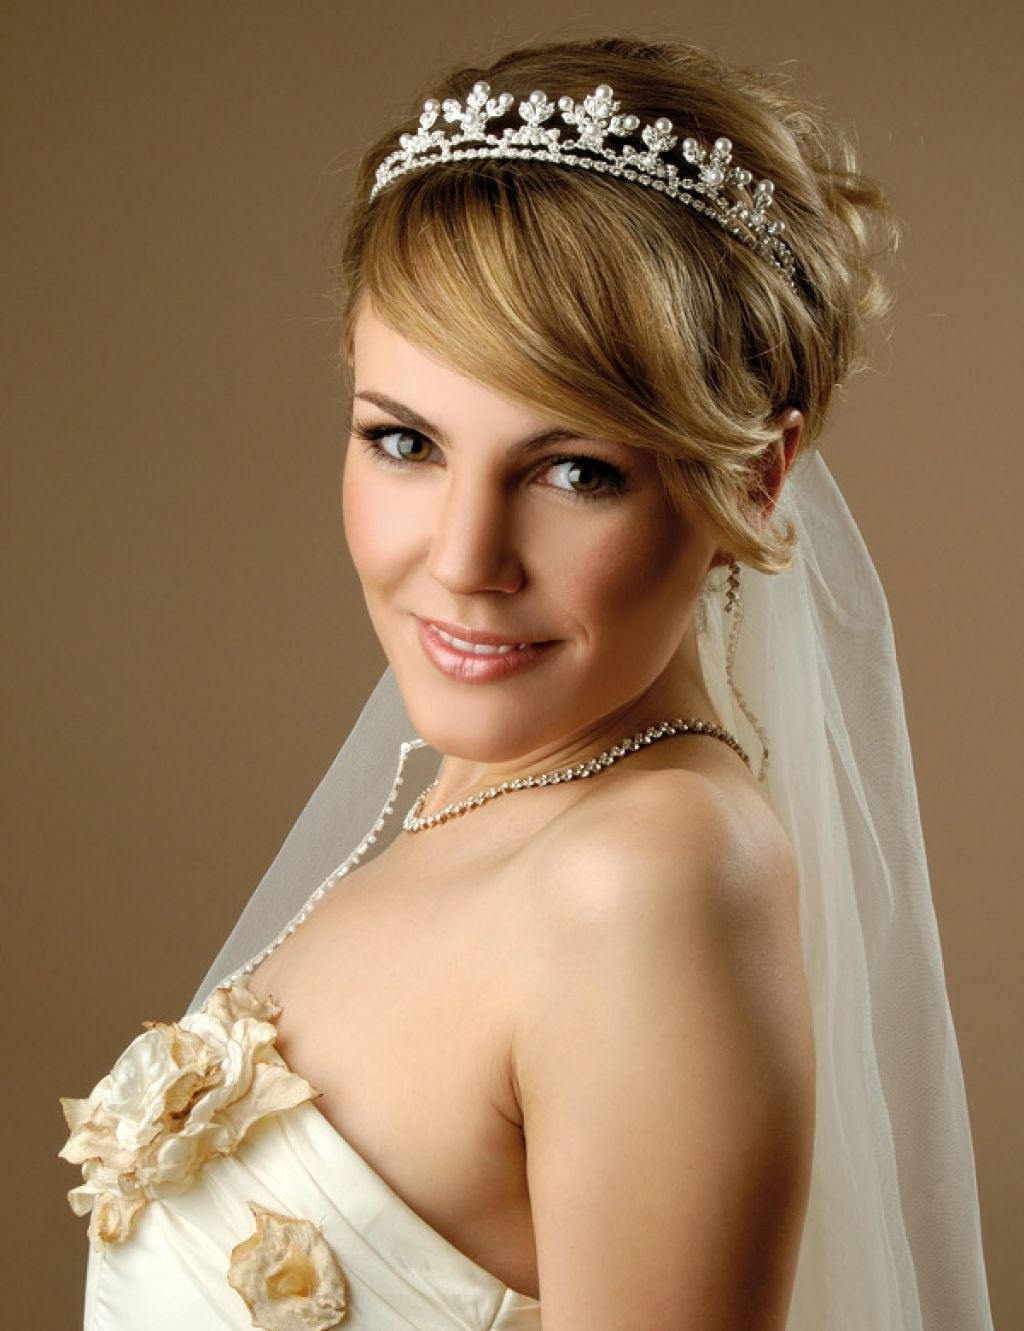 Short Bridal Hairstyles With Veil – Hairstyle For Women & Man With Best And Newest Wedding Hairstyles For Long Hair With Veil And Headband (View 14 of 15)